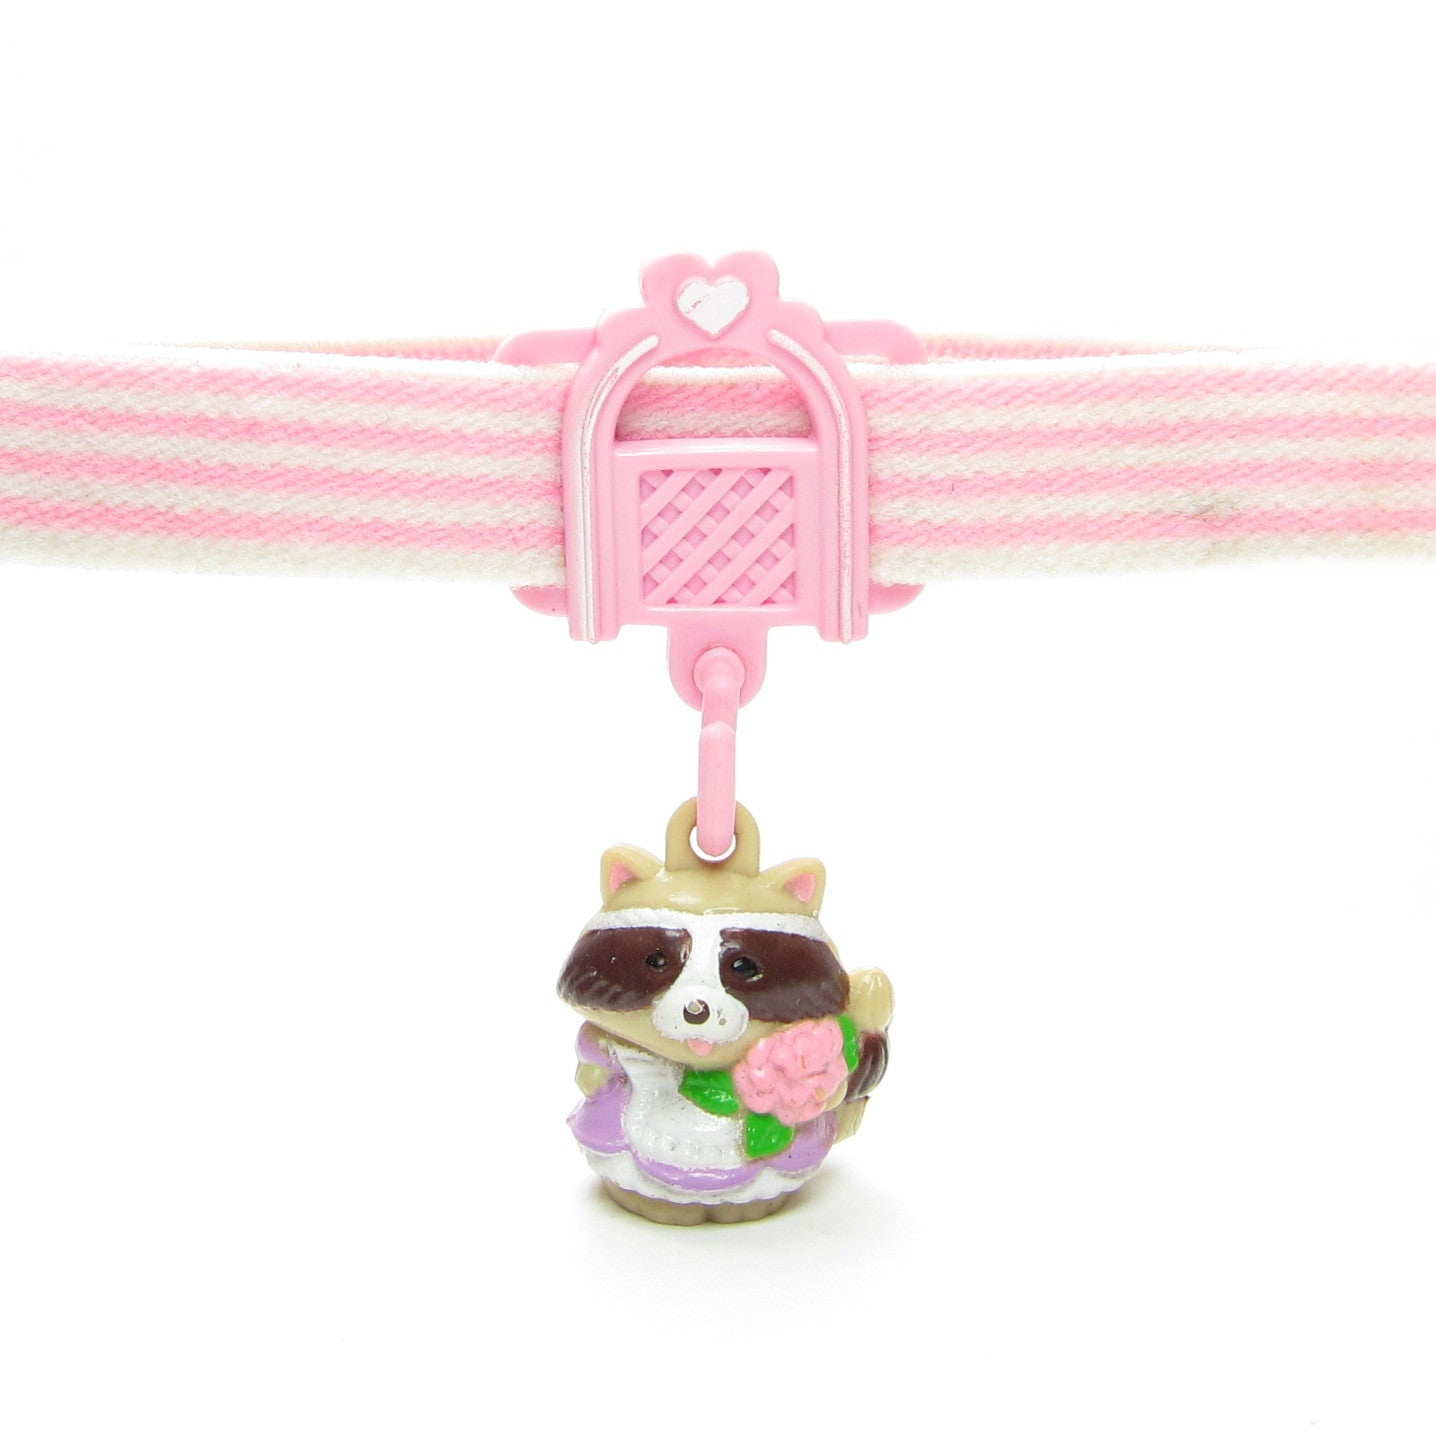 Rosie Raccoon Charmkins charm with elastic stocking garter